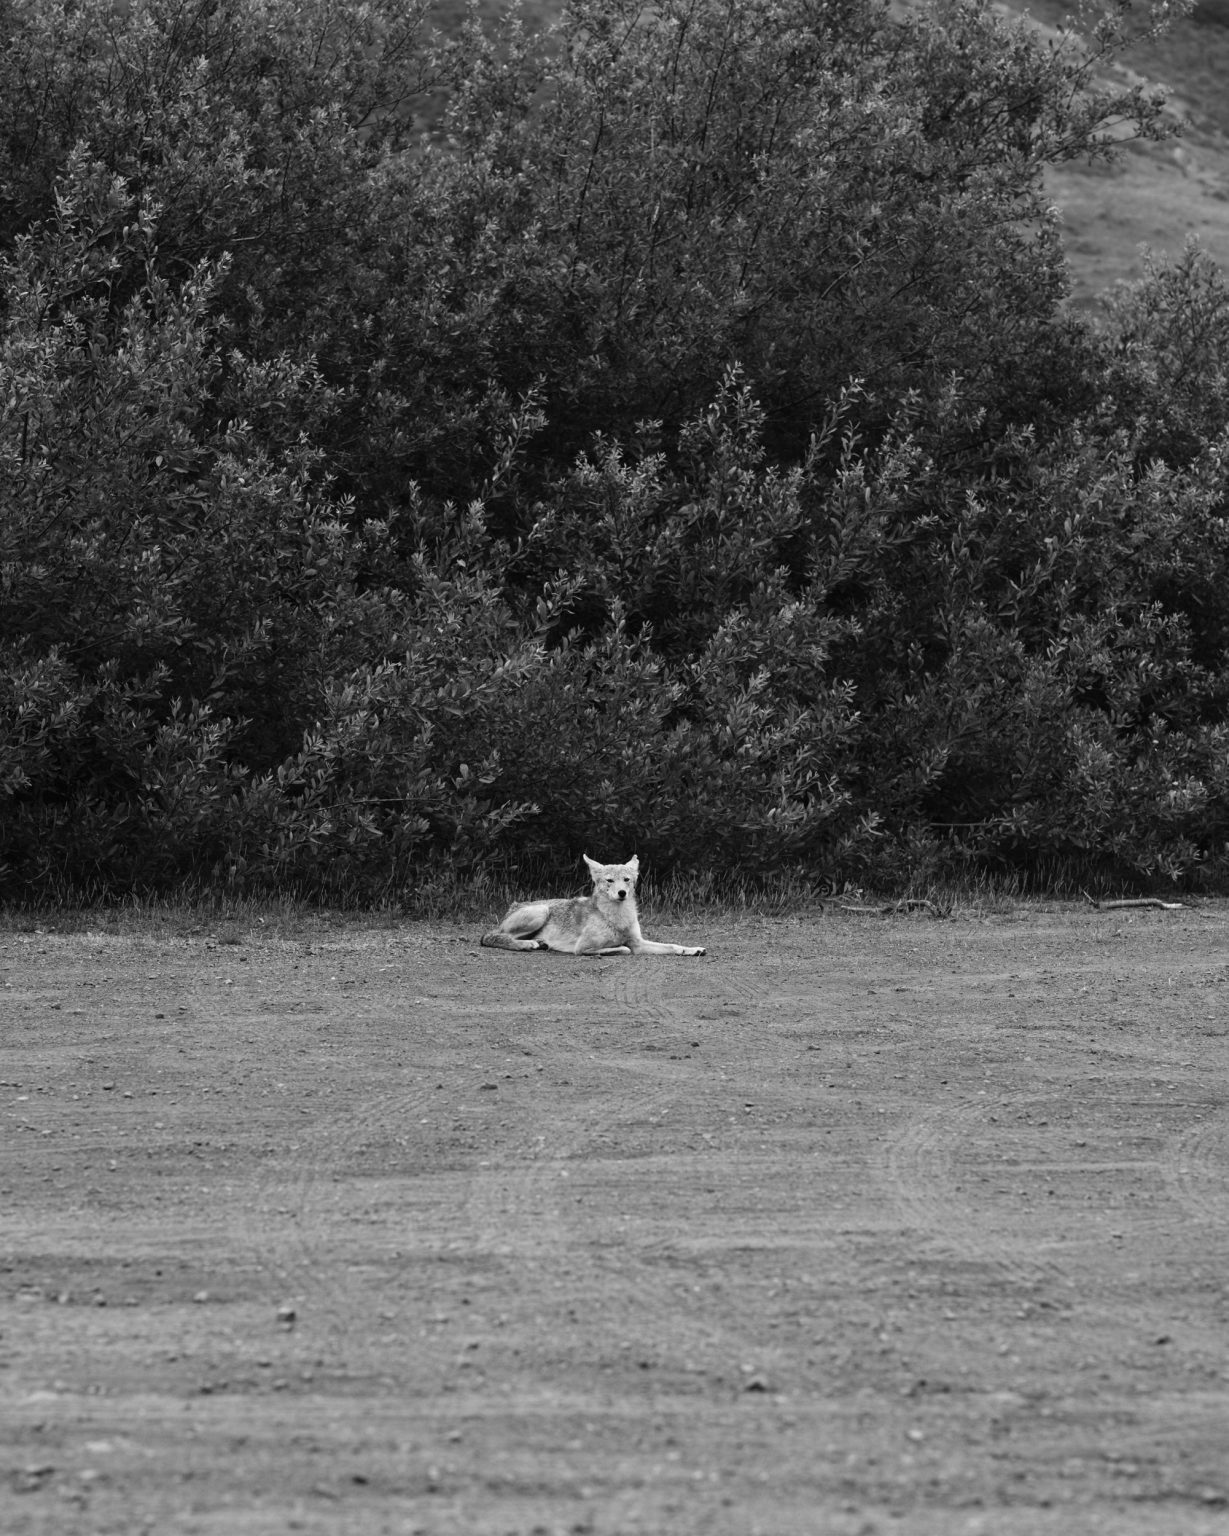 Coyote indifferent to human presence. California 2020